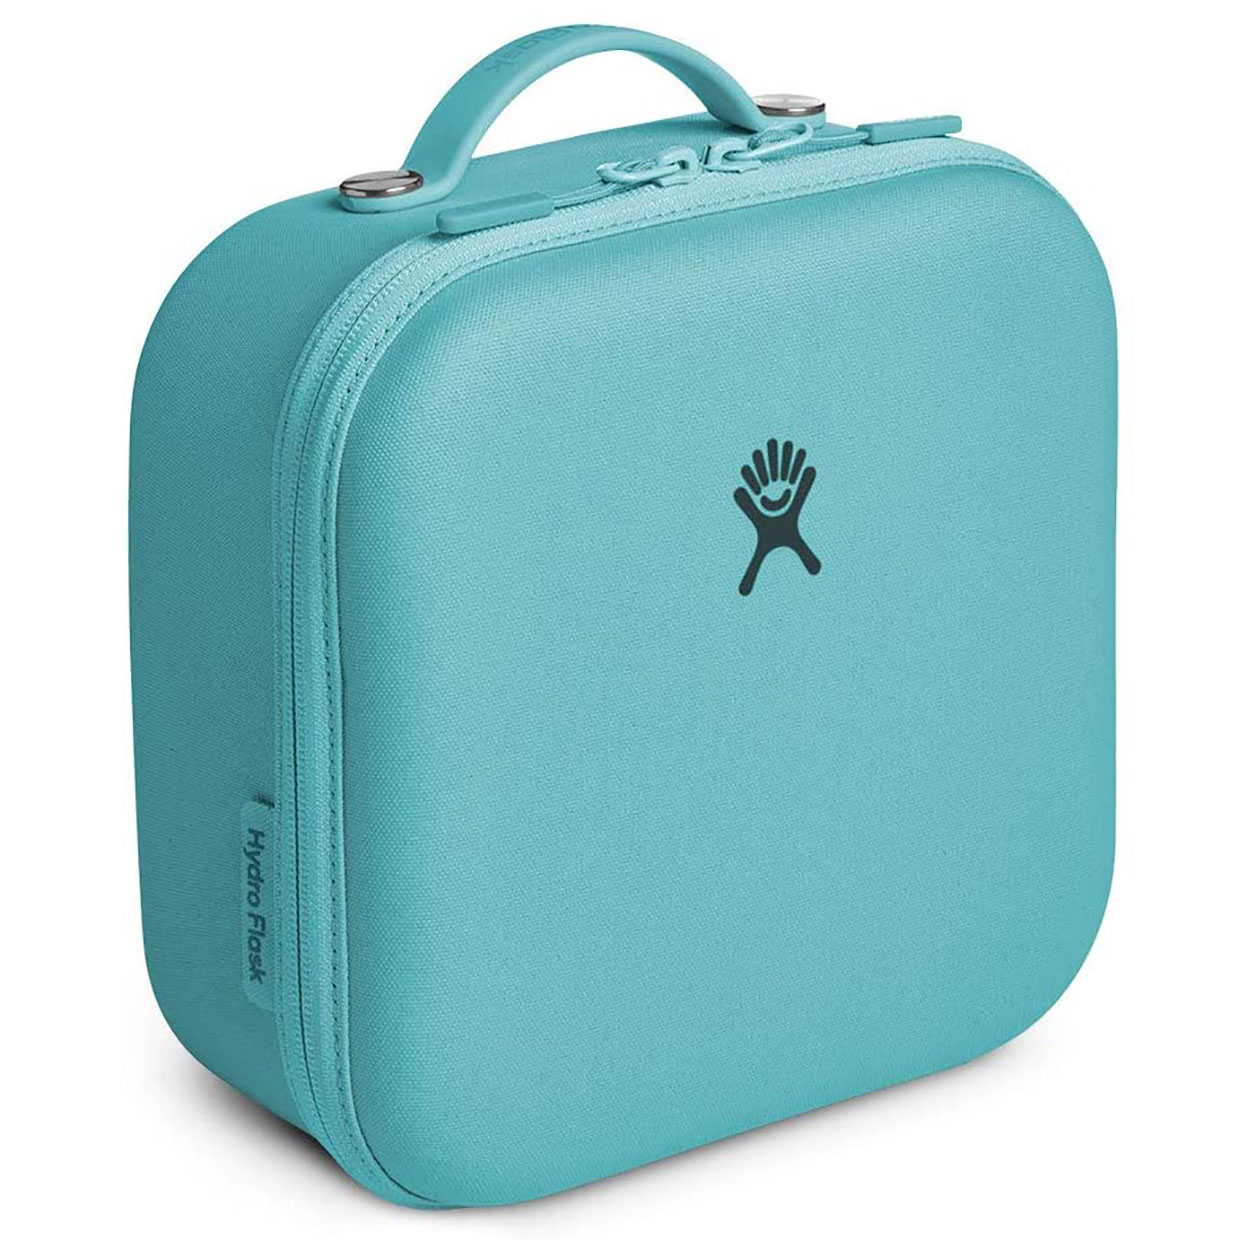 Hydroflask-Lunch Box Small